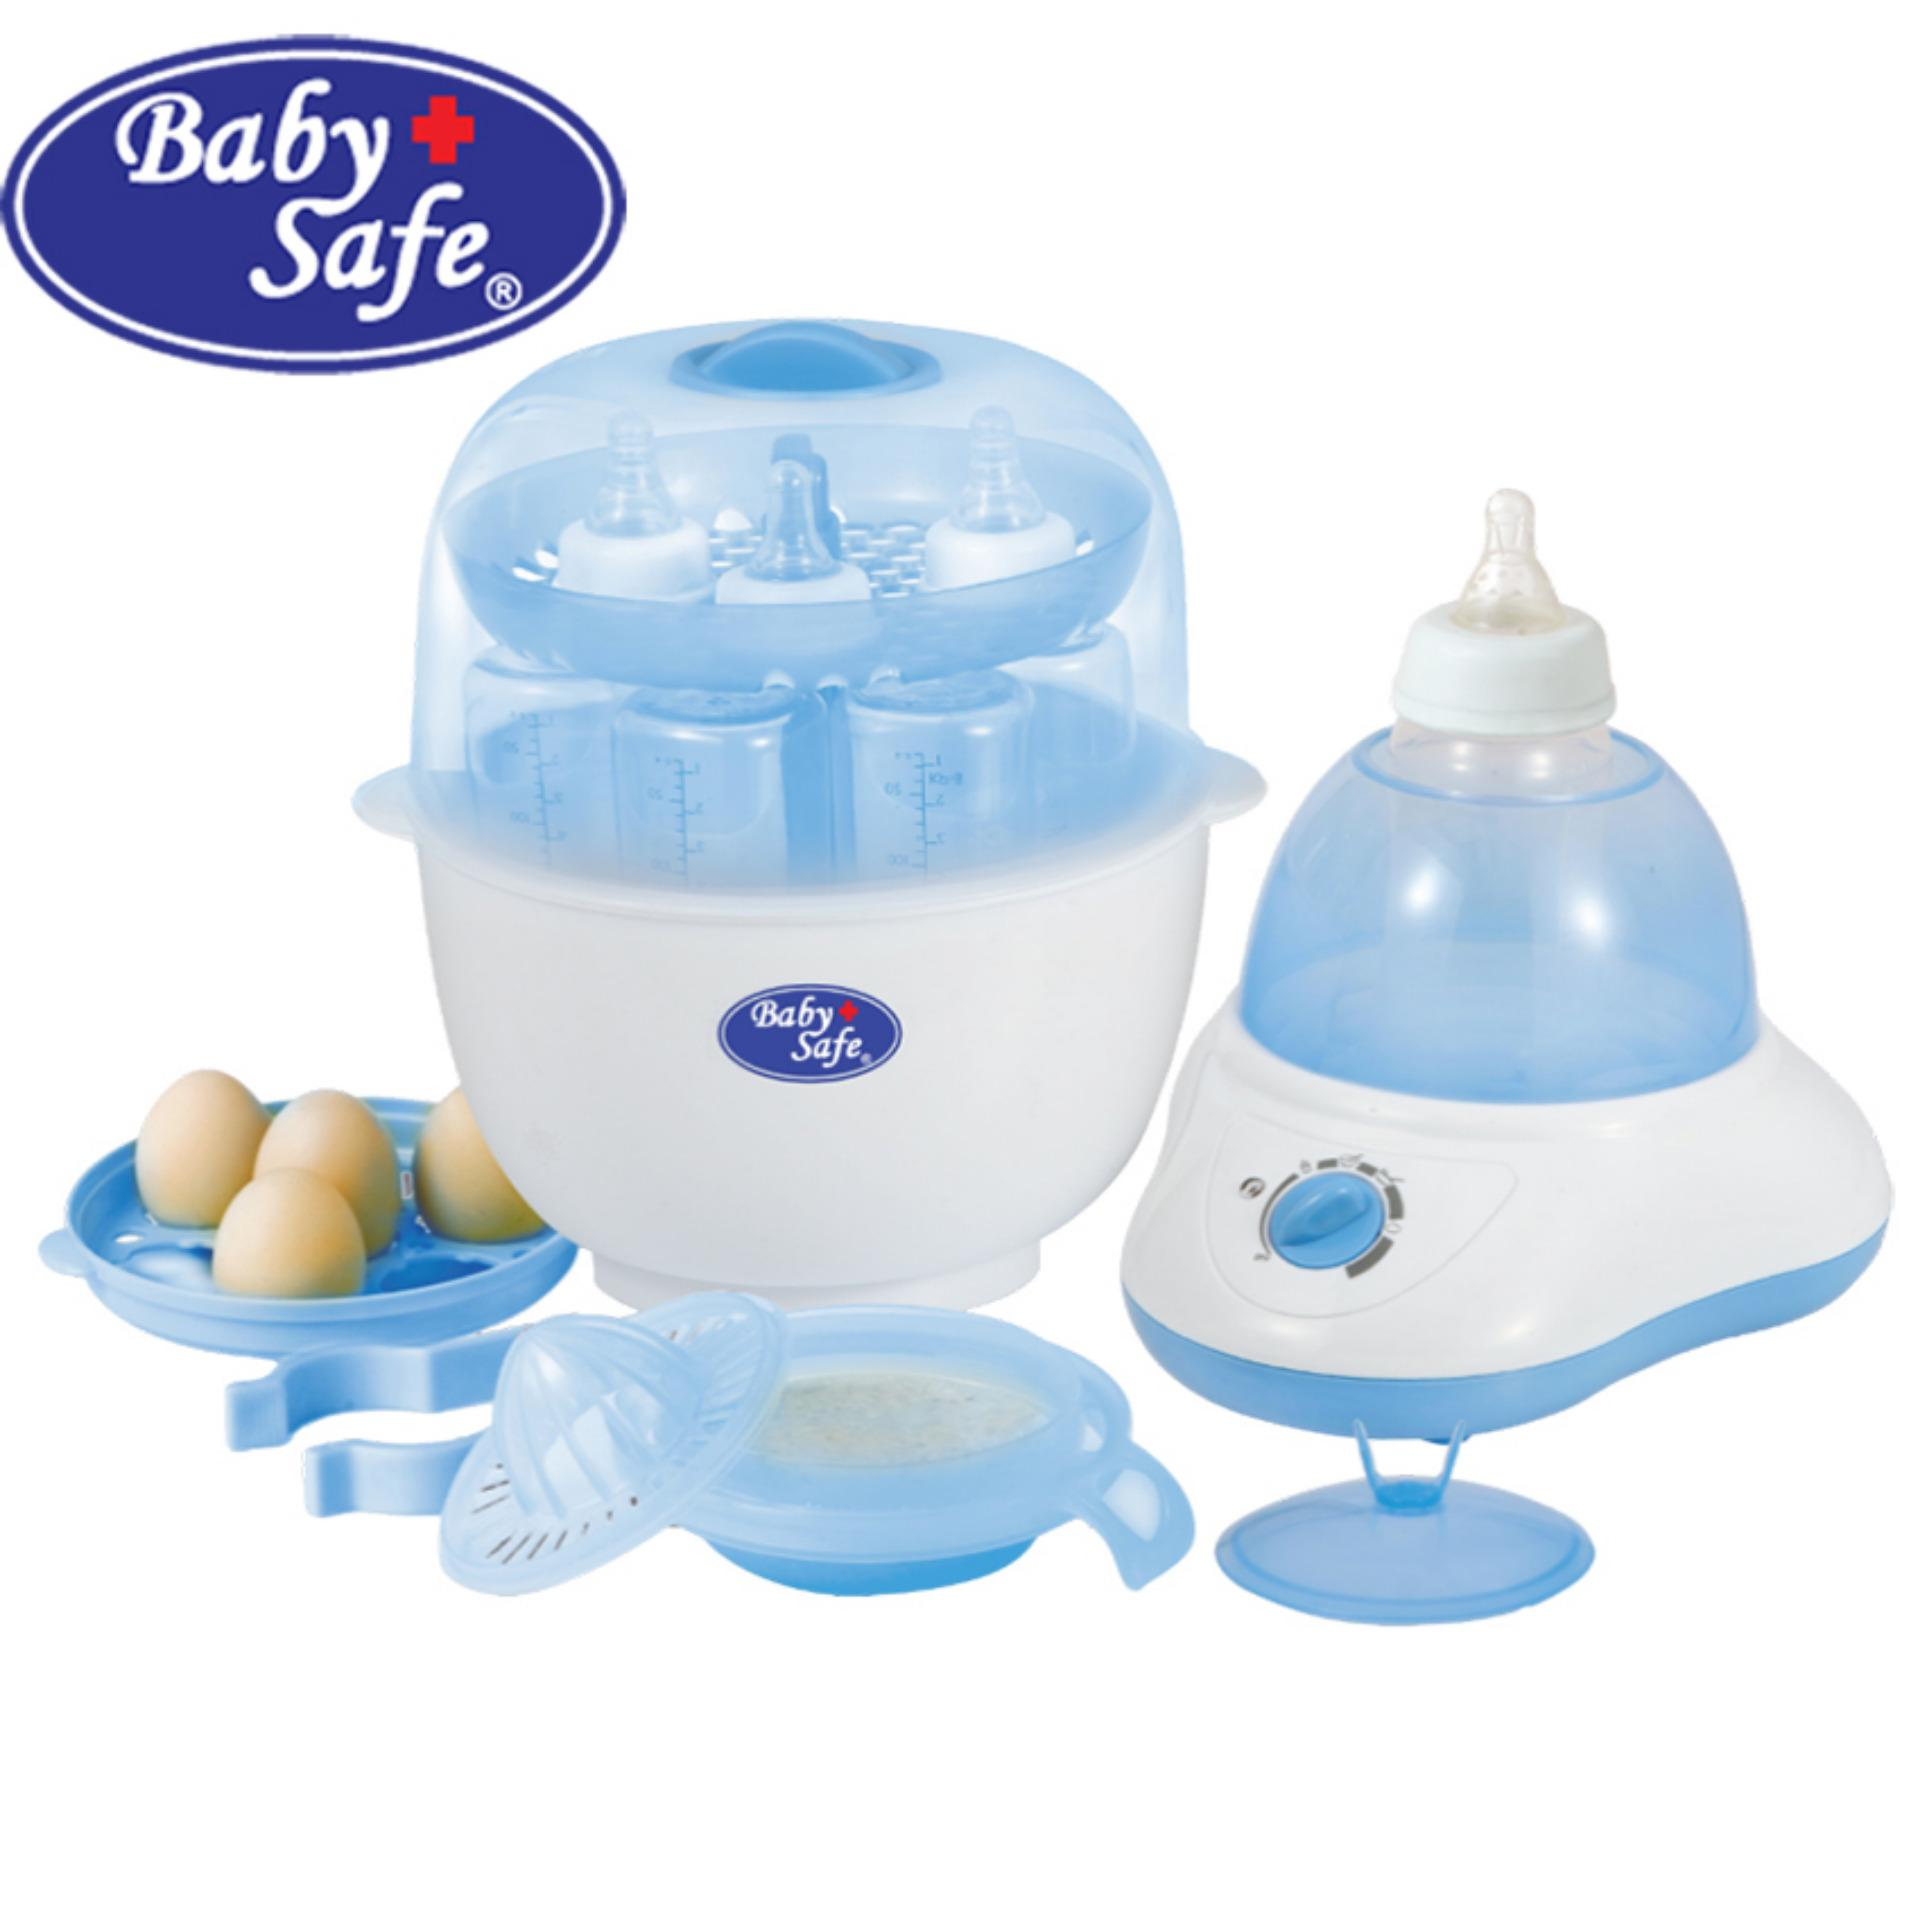 Toko Baby Safe Lb 309 Multifunction Bottle Sterilizer Baby Safe Indonesia